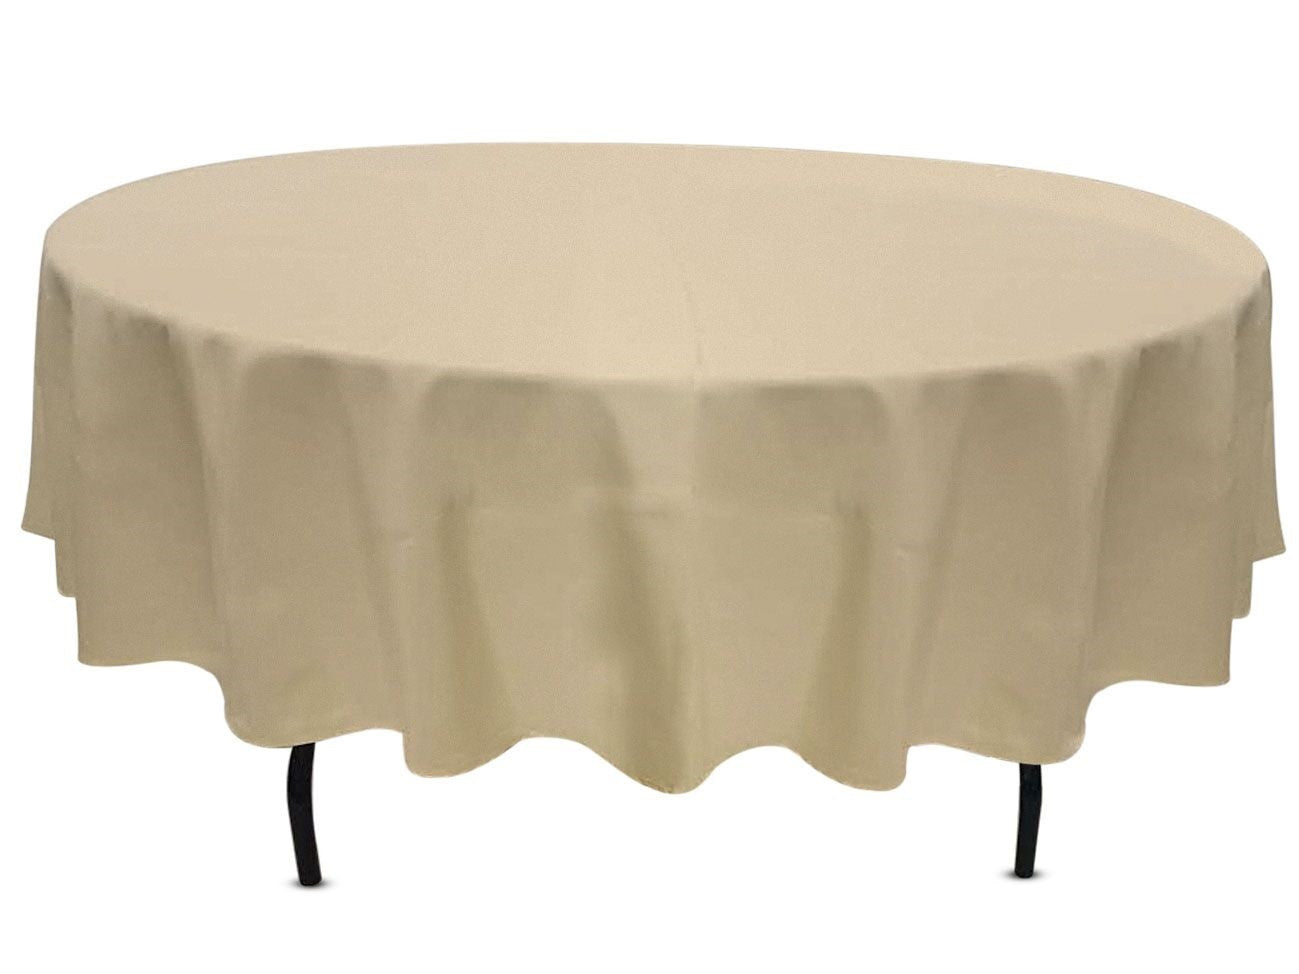 80 round tablecloth Valley Tablecloths